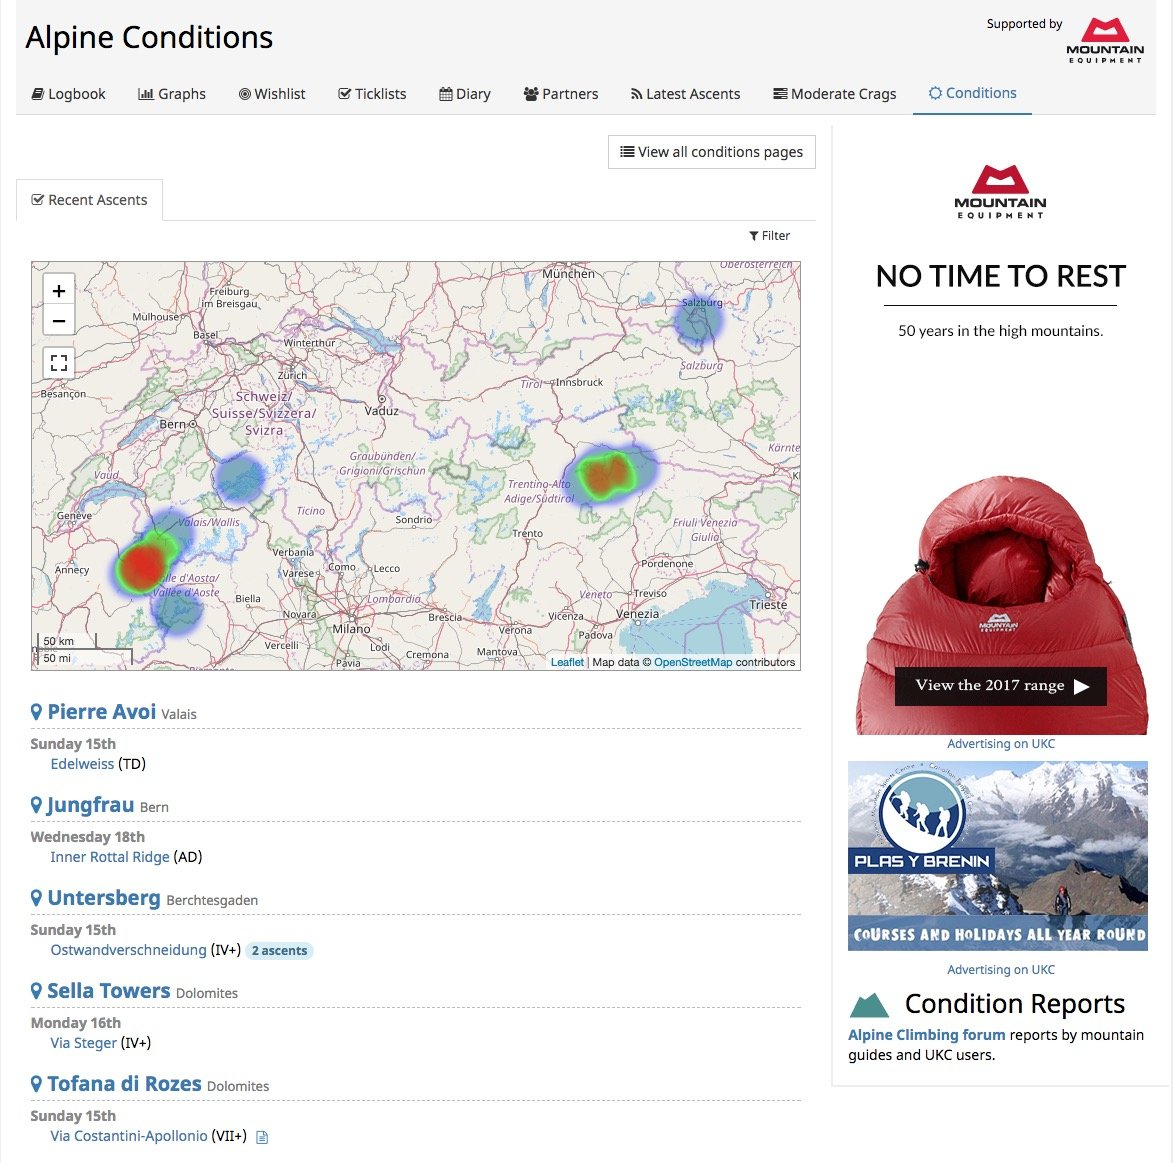 Alpine Conditions Page, 217 kb